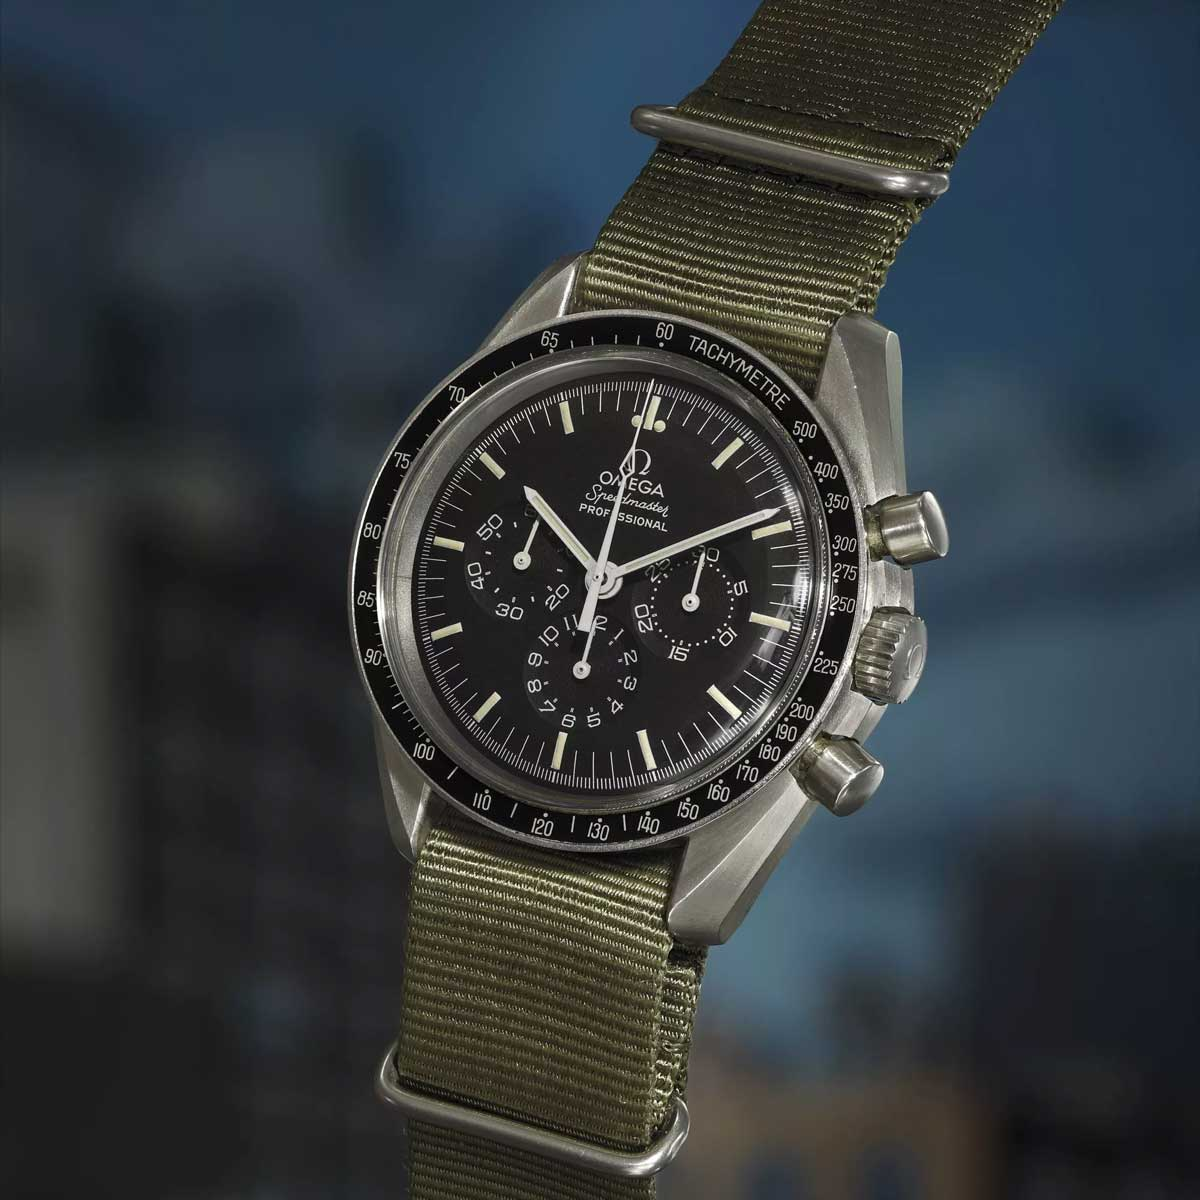 Omega Speedmaster 'Alaska III' Project ref. 145.022, sold with Phillips Watches at their inaugural New York sale, 26 October 2017 for US$187,500 (Image: phillipswatches.com)